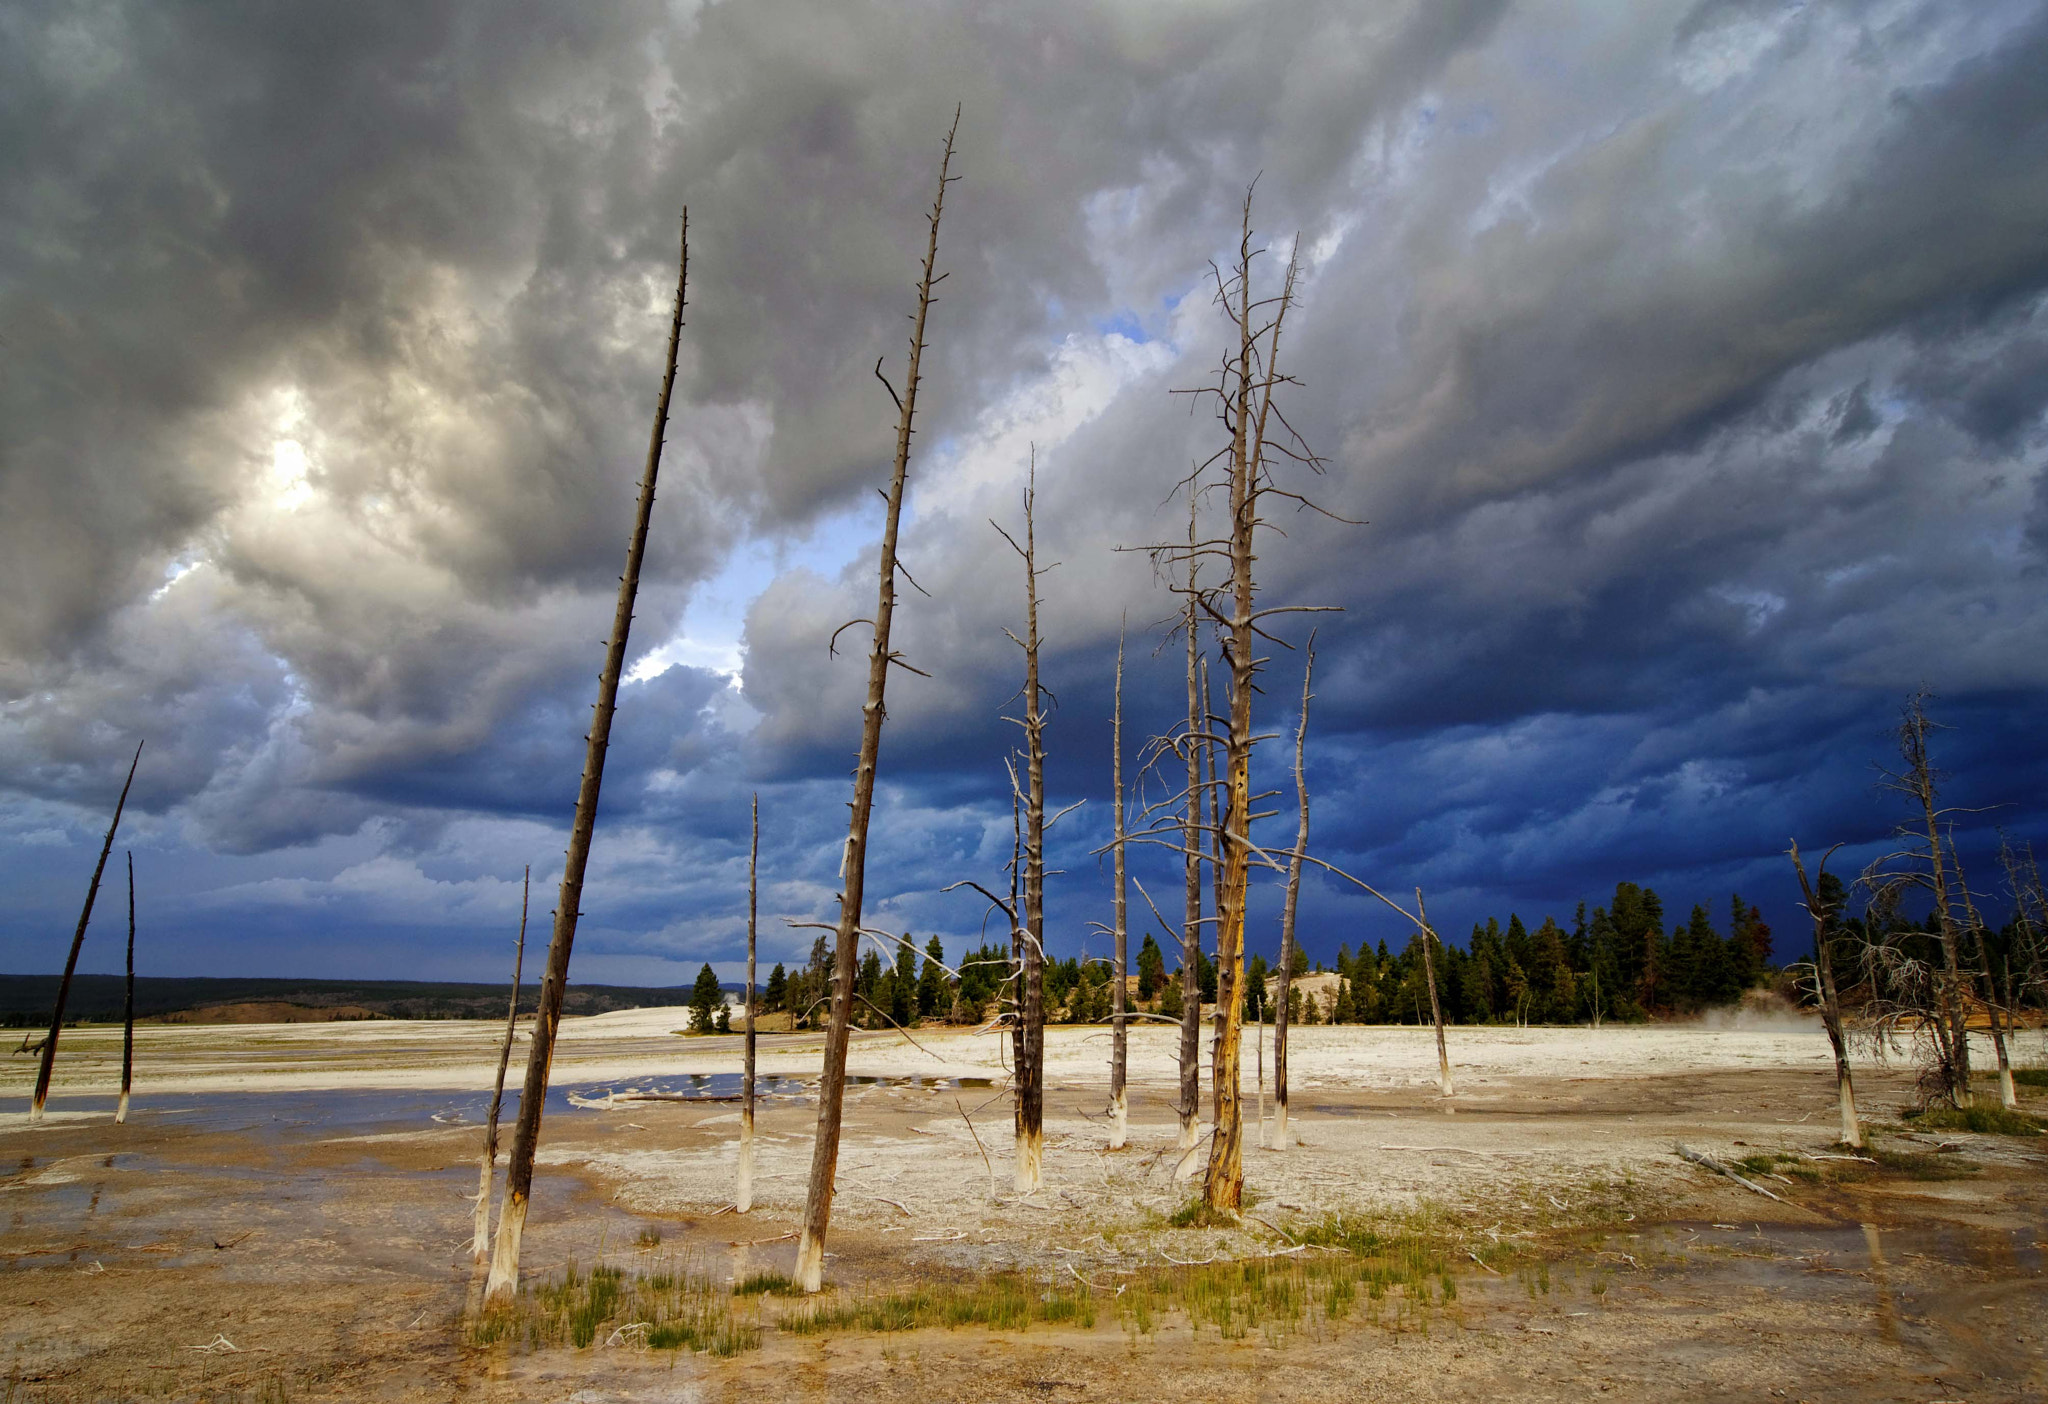 Photograph Stormy Weather In Yellowstone by Peter Bongers on 500px